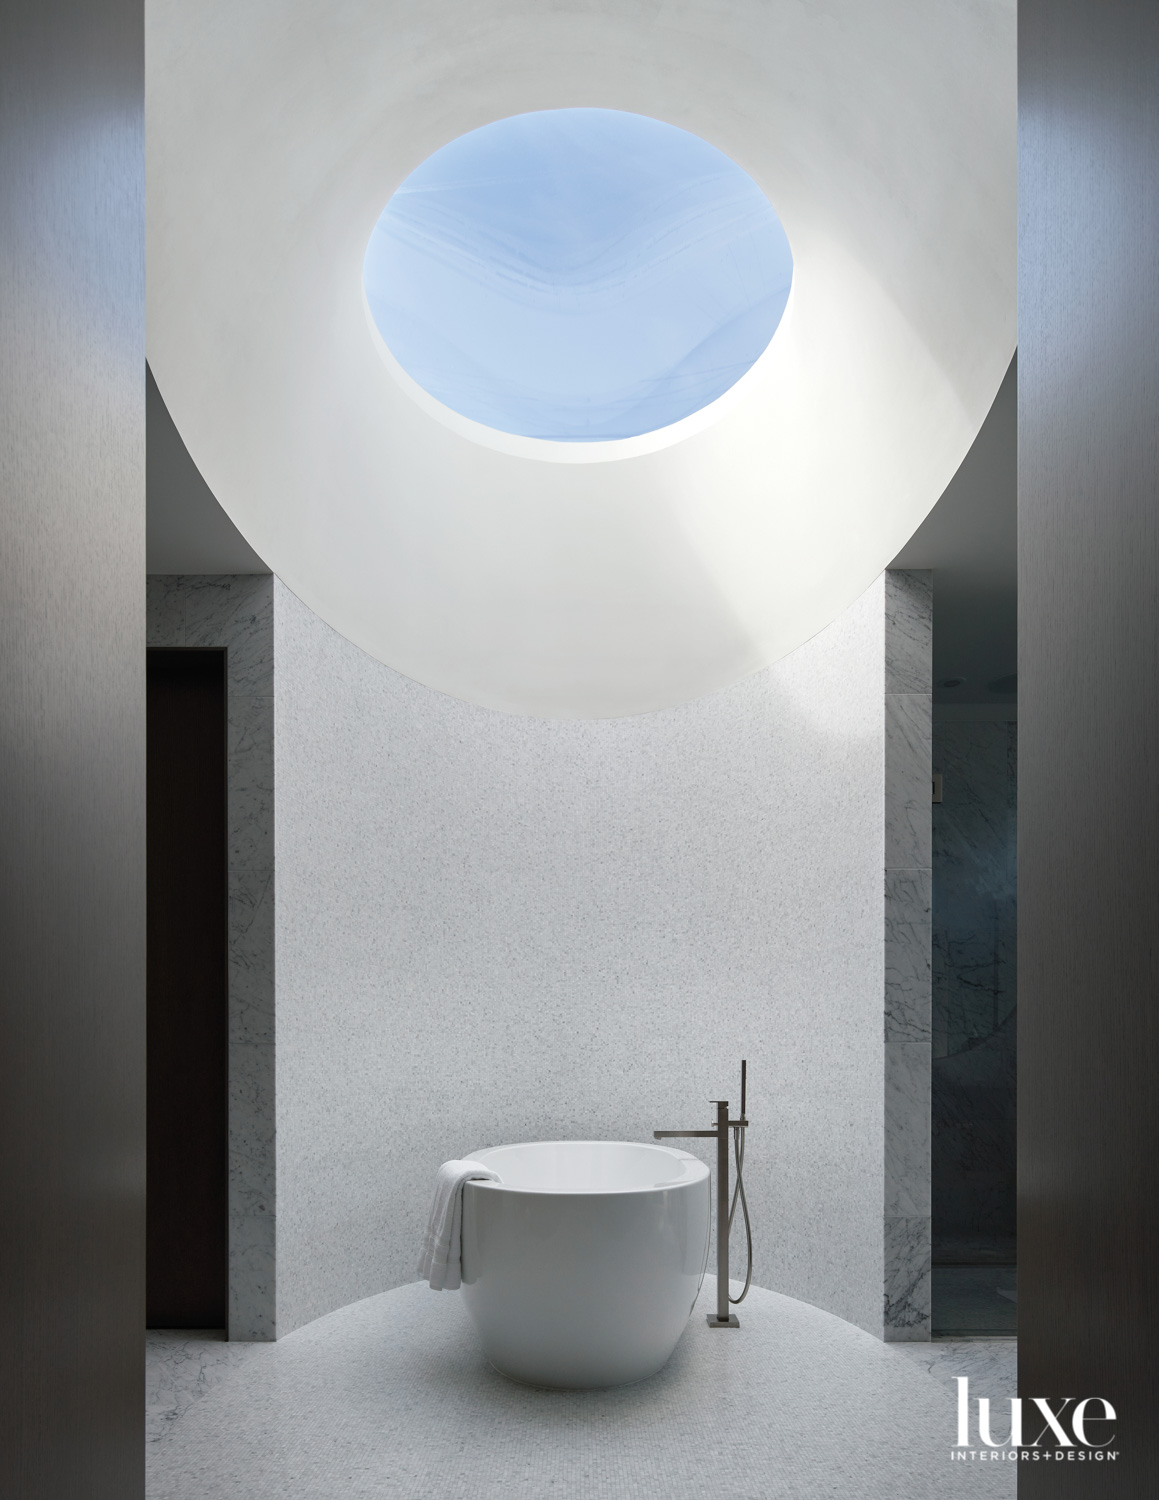 primary bathroom with oculus above a freestanding tub